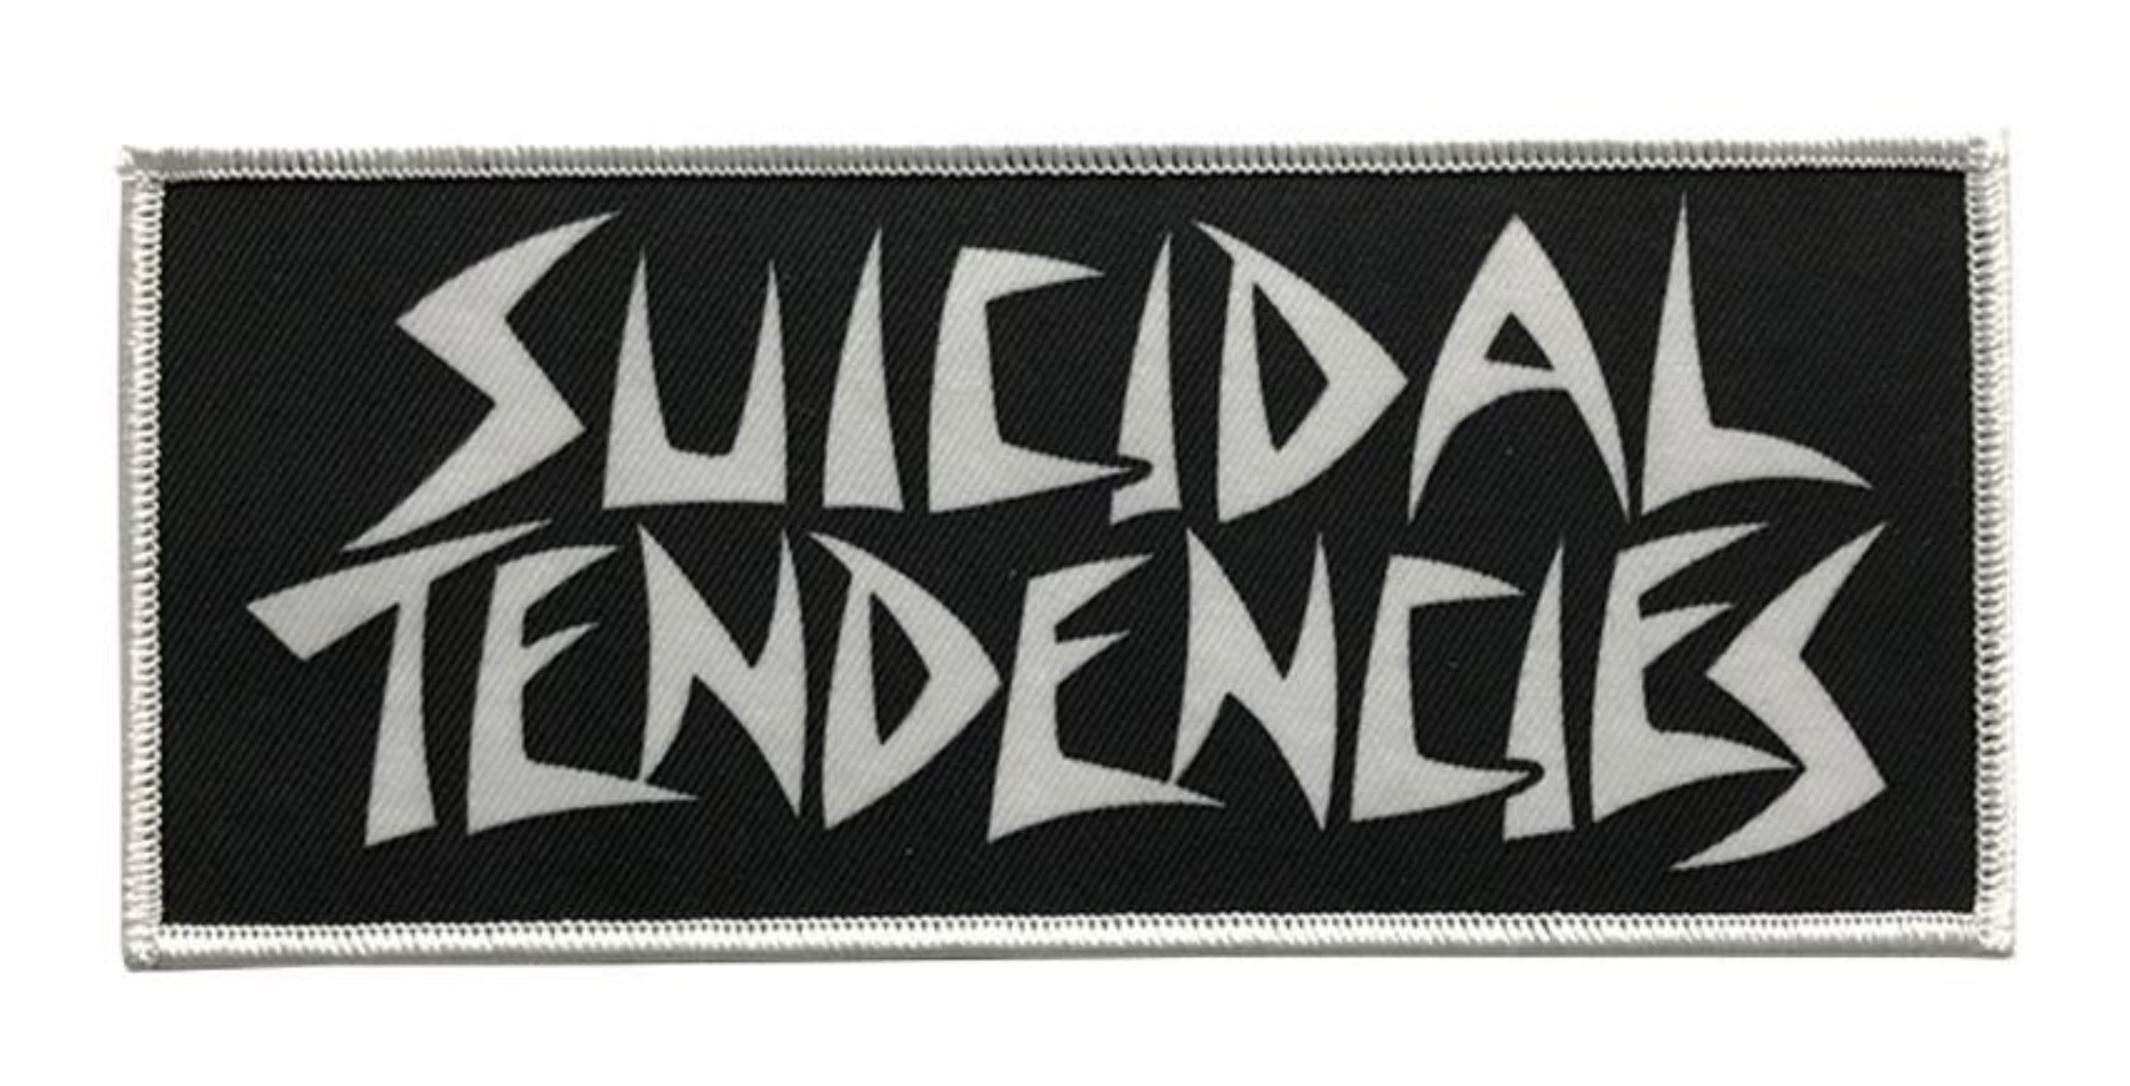 Suicidal Tendencies Patch from suicidaltendenciesstore.com